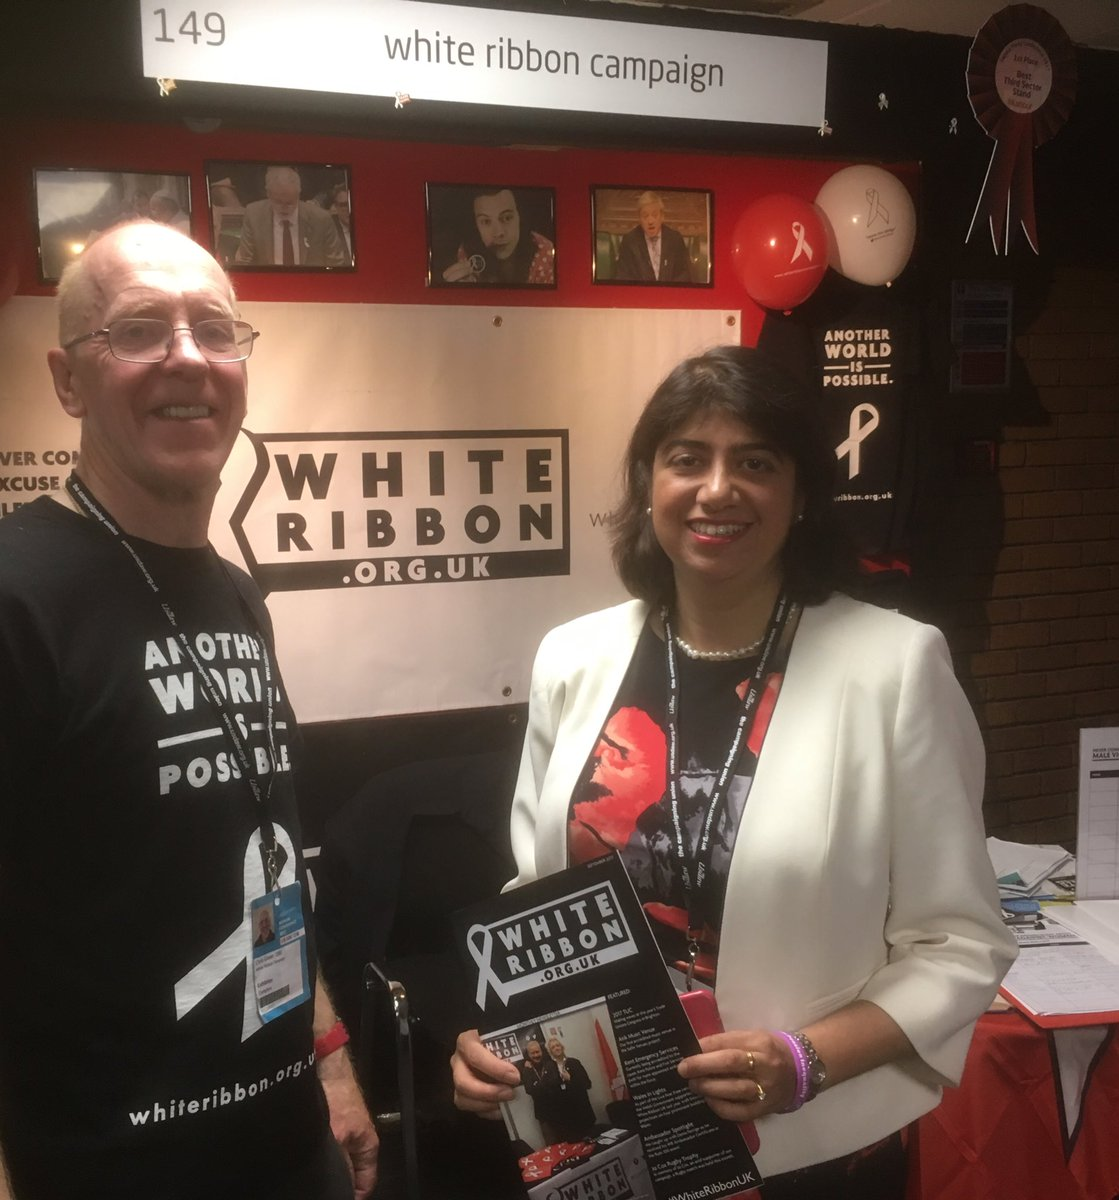 Seema_Malhotra_MP_supporting_the_White_Ribbon_Campaign.jpg